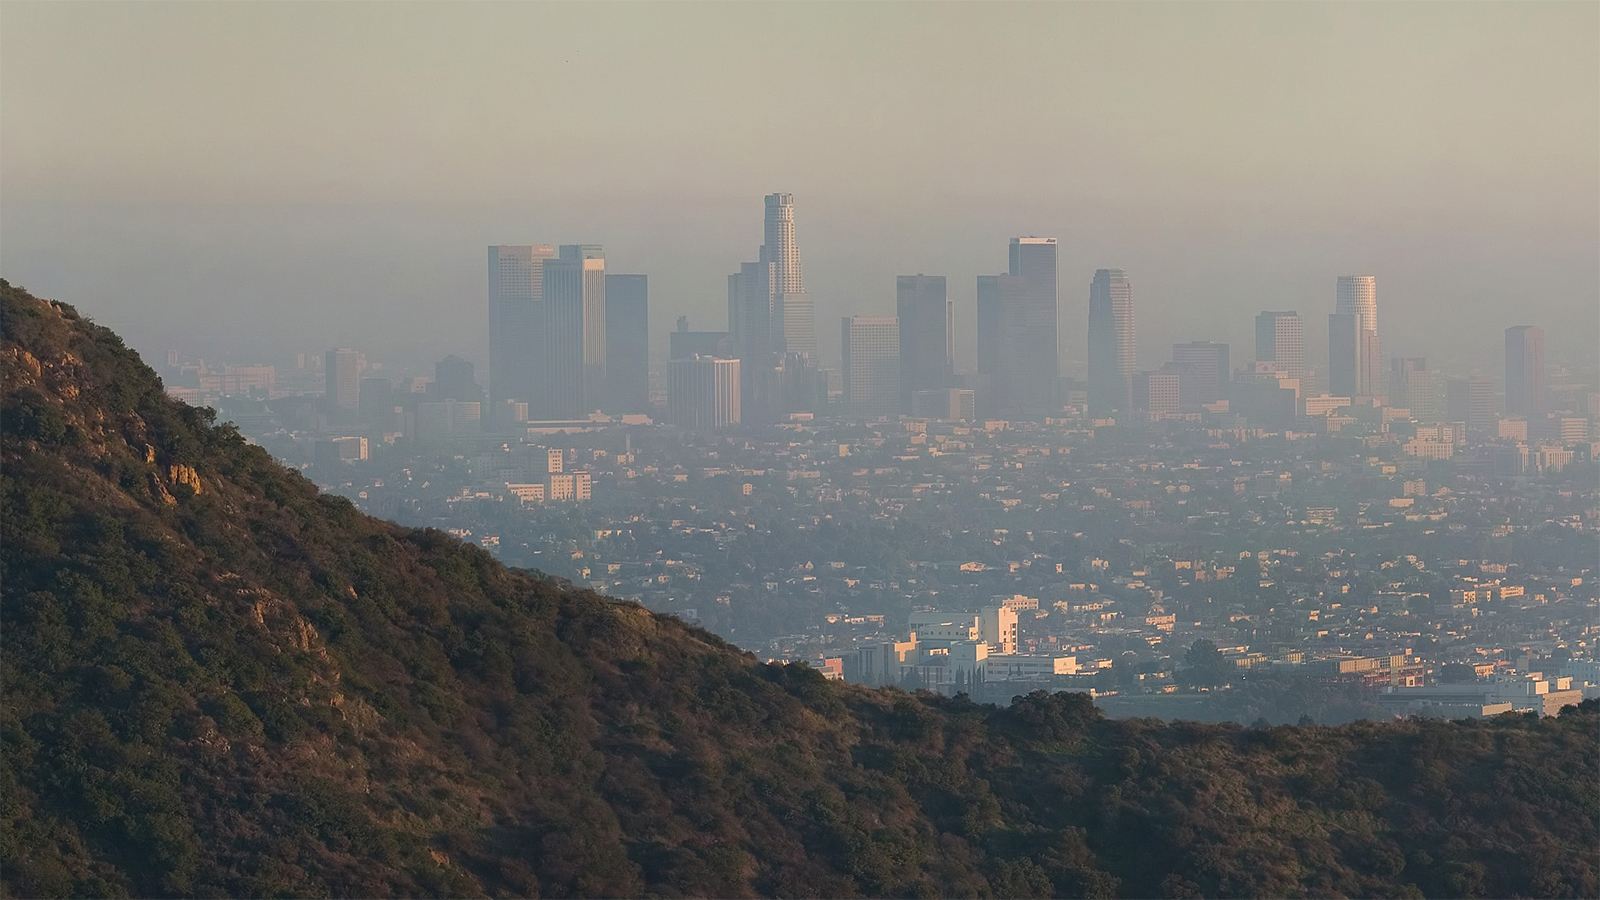 Prominent pollution in 2006 photo Los Angeles, as viewed from the Hollywood Hills, by Diliff (cropped); CC BY-SA 3.0; via Wikimedia Commons.